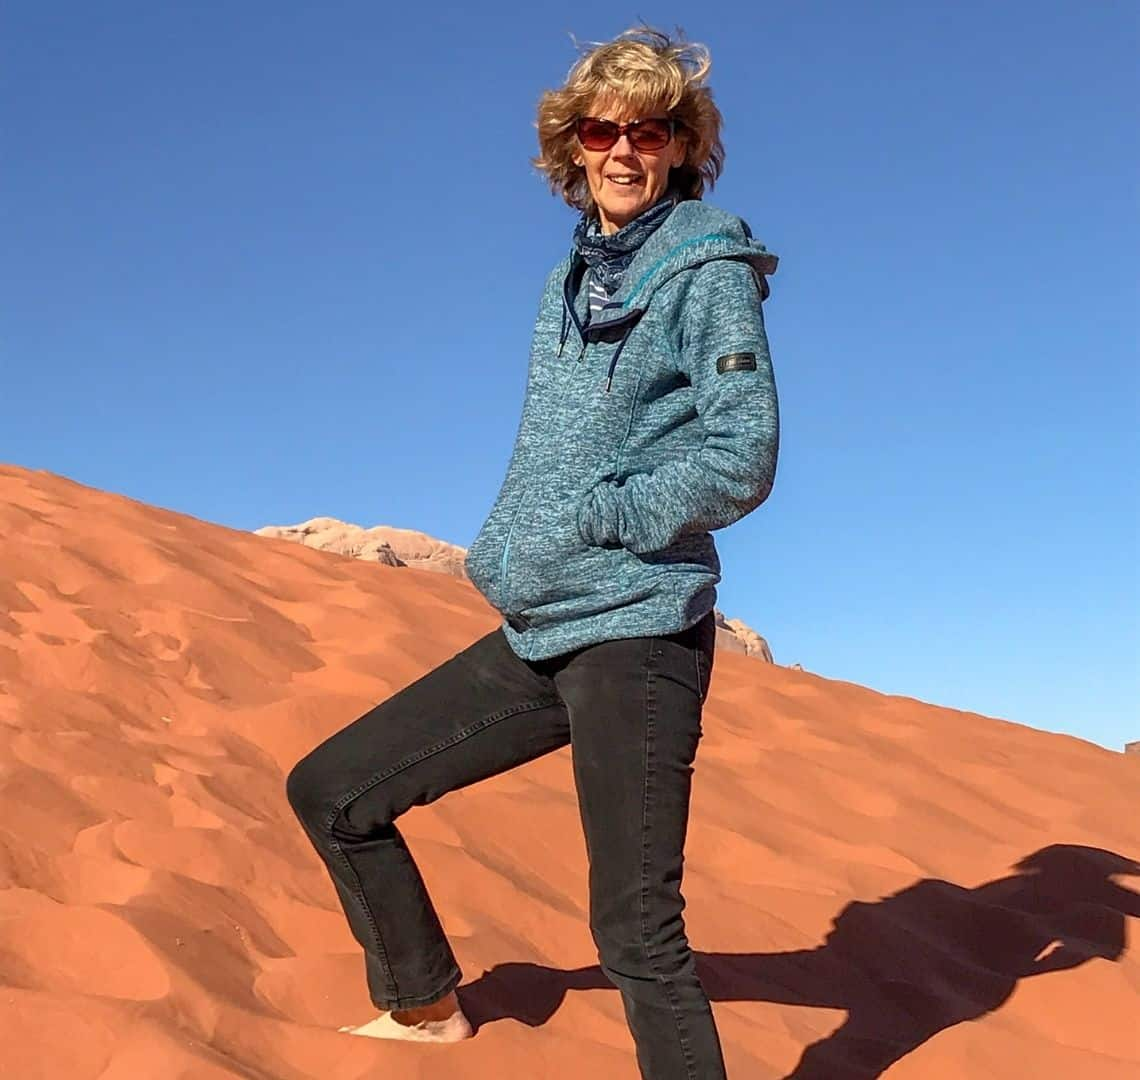 Granny wanderlust on a red sand dune. Behind her the sky is bright blue. She has black trousers on and a blue jumper. Her hands are in her pockets and her right leg is bent, a pace up the dune. She has sunglasses on and her hair is windswept.